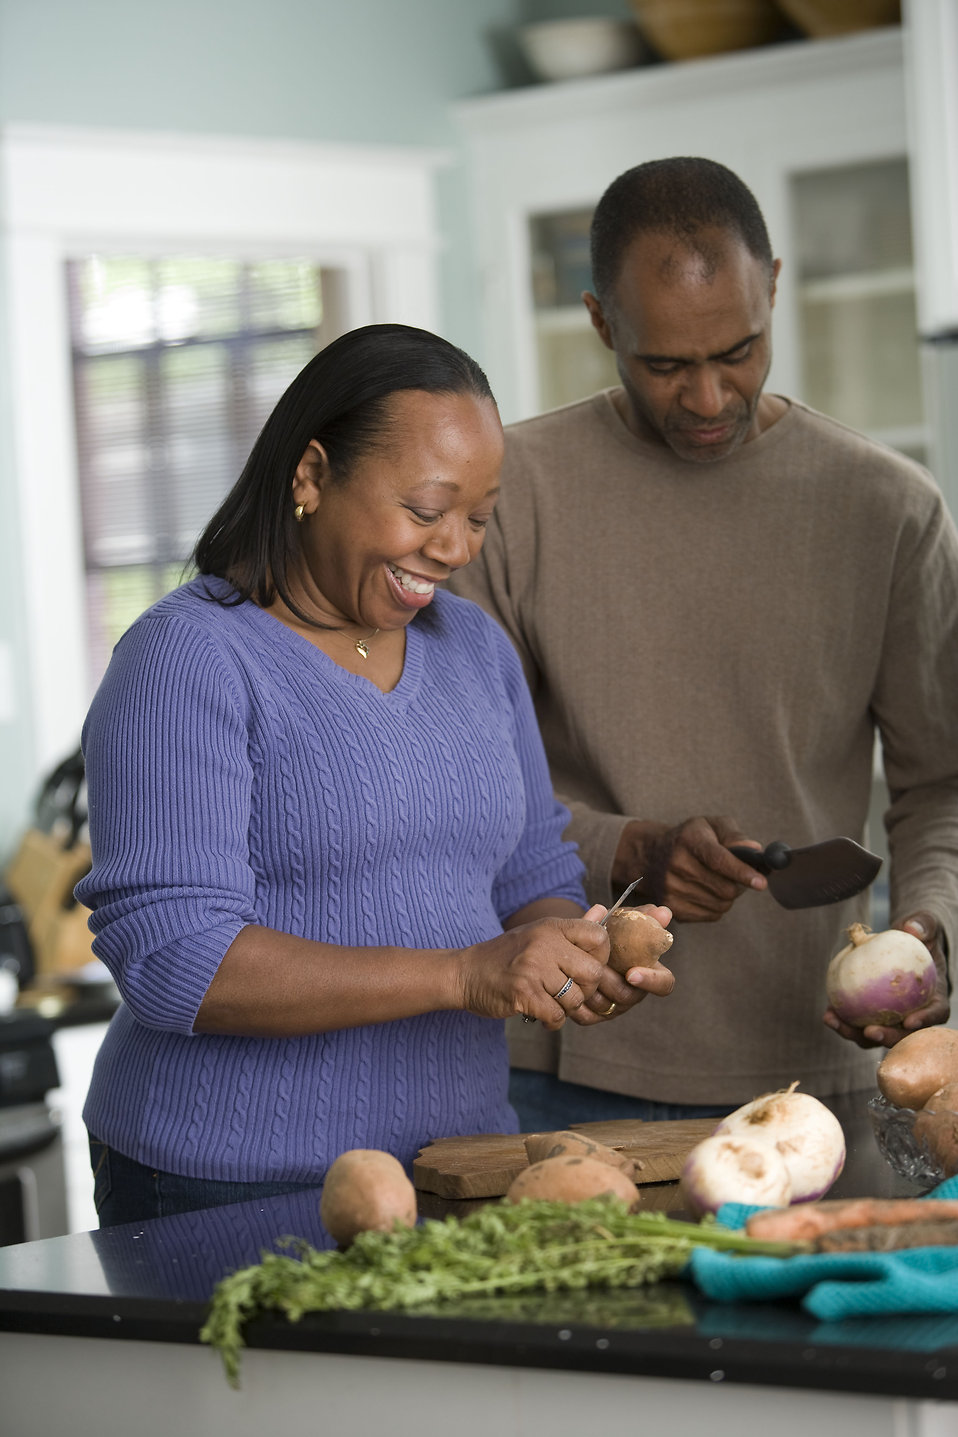 Cooking Free Stock Photo An African American Couple